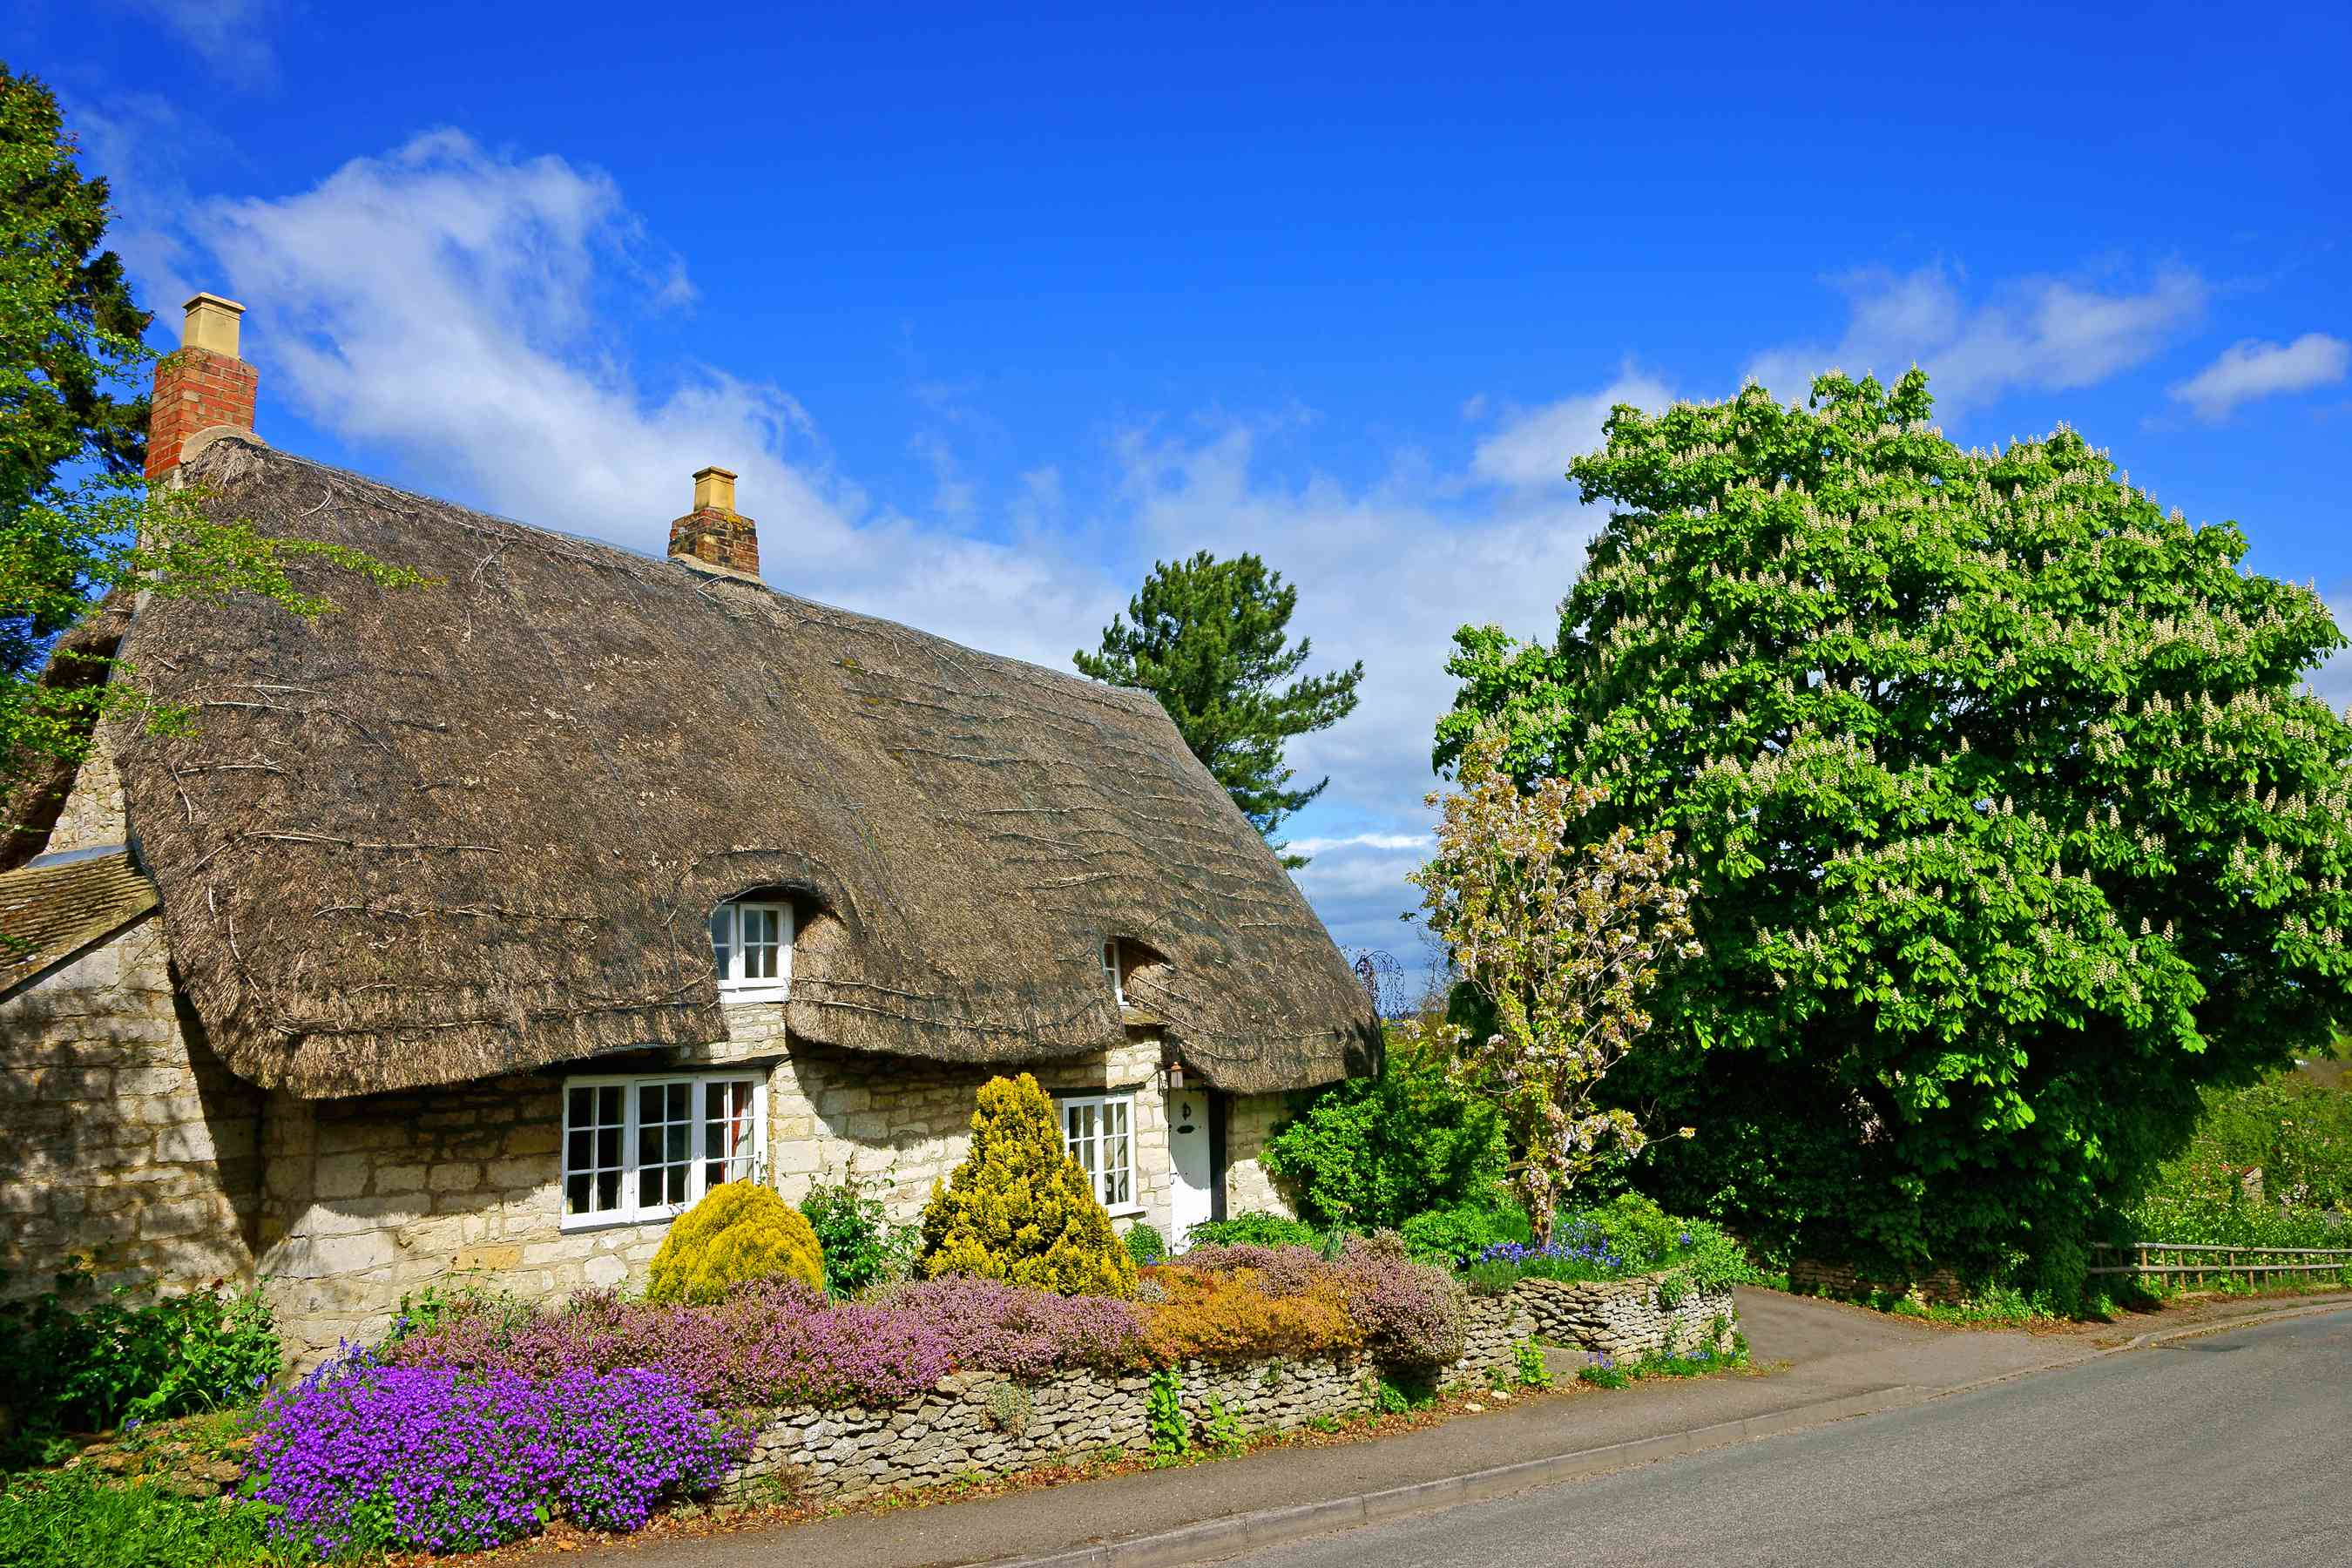 A Thatched Cottage in the Cotswolds, Gloucestershire, UK